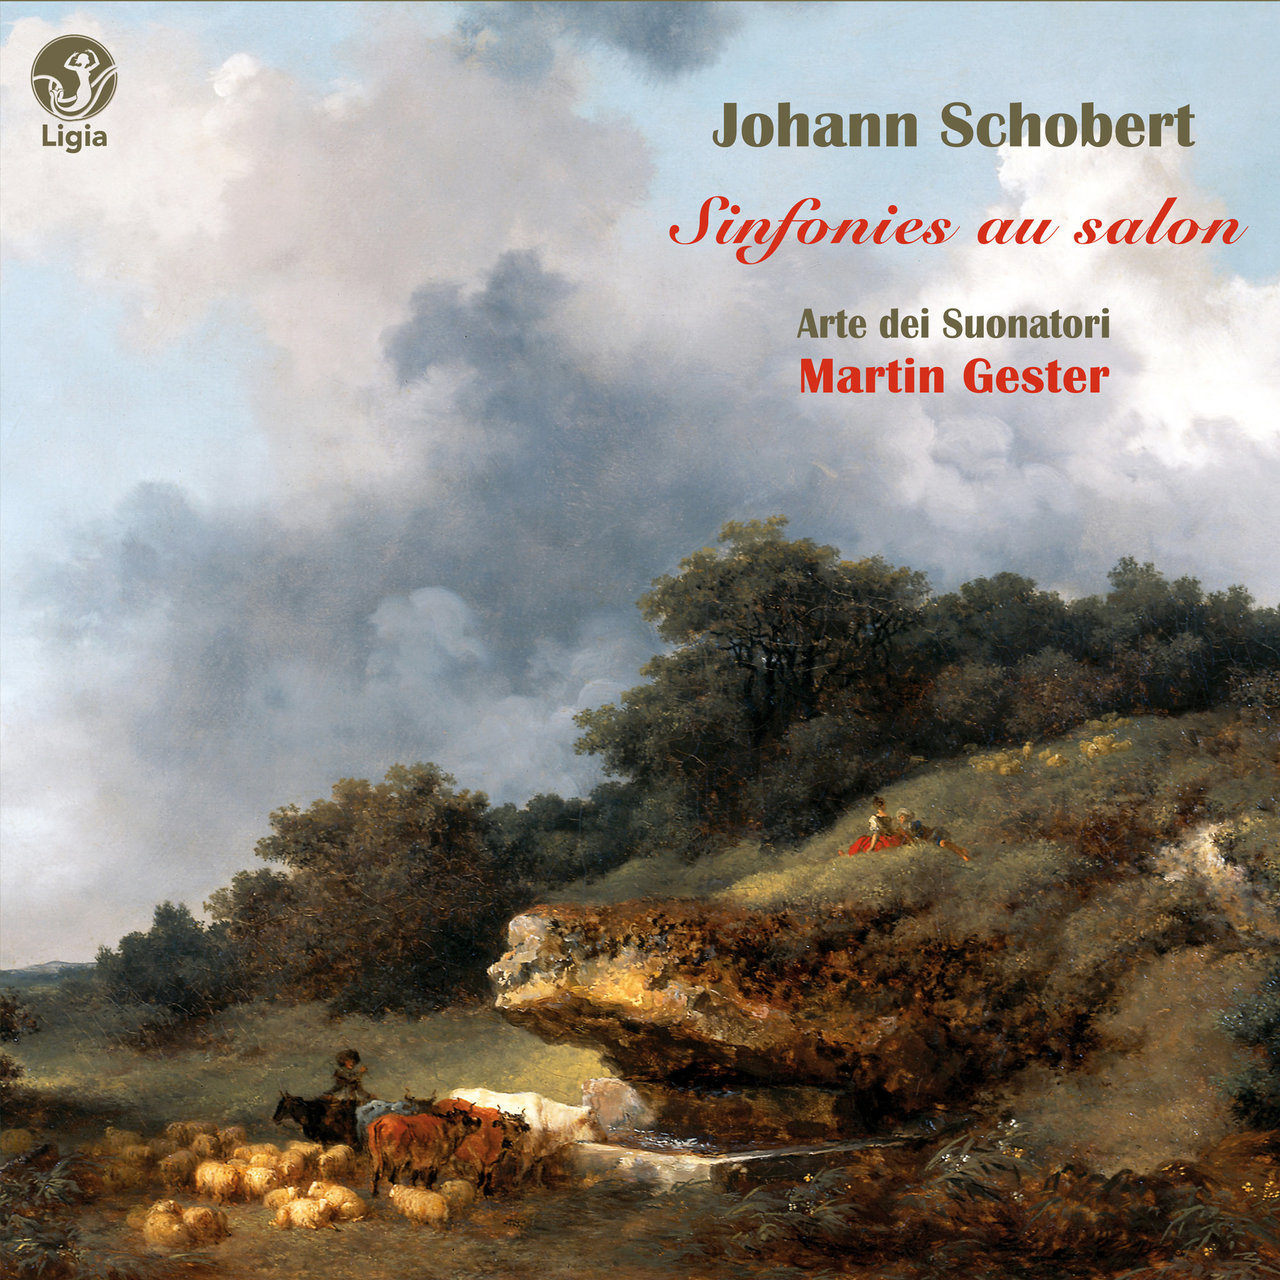 Schobert: Sinfonies au salon